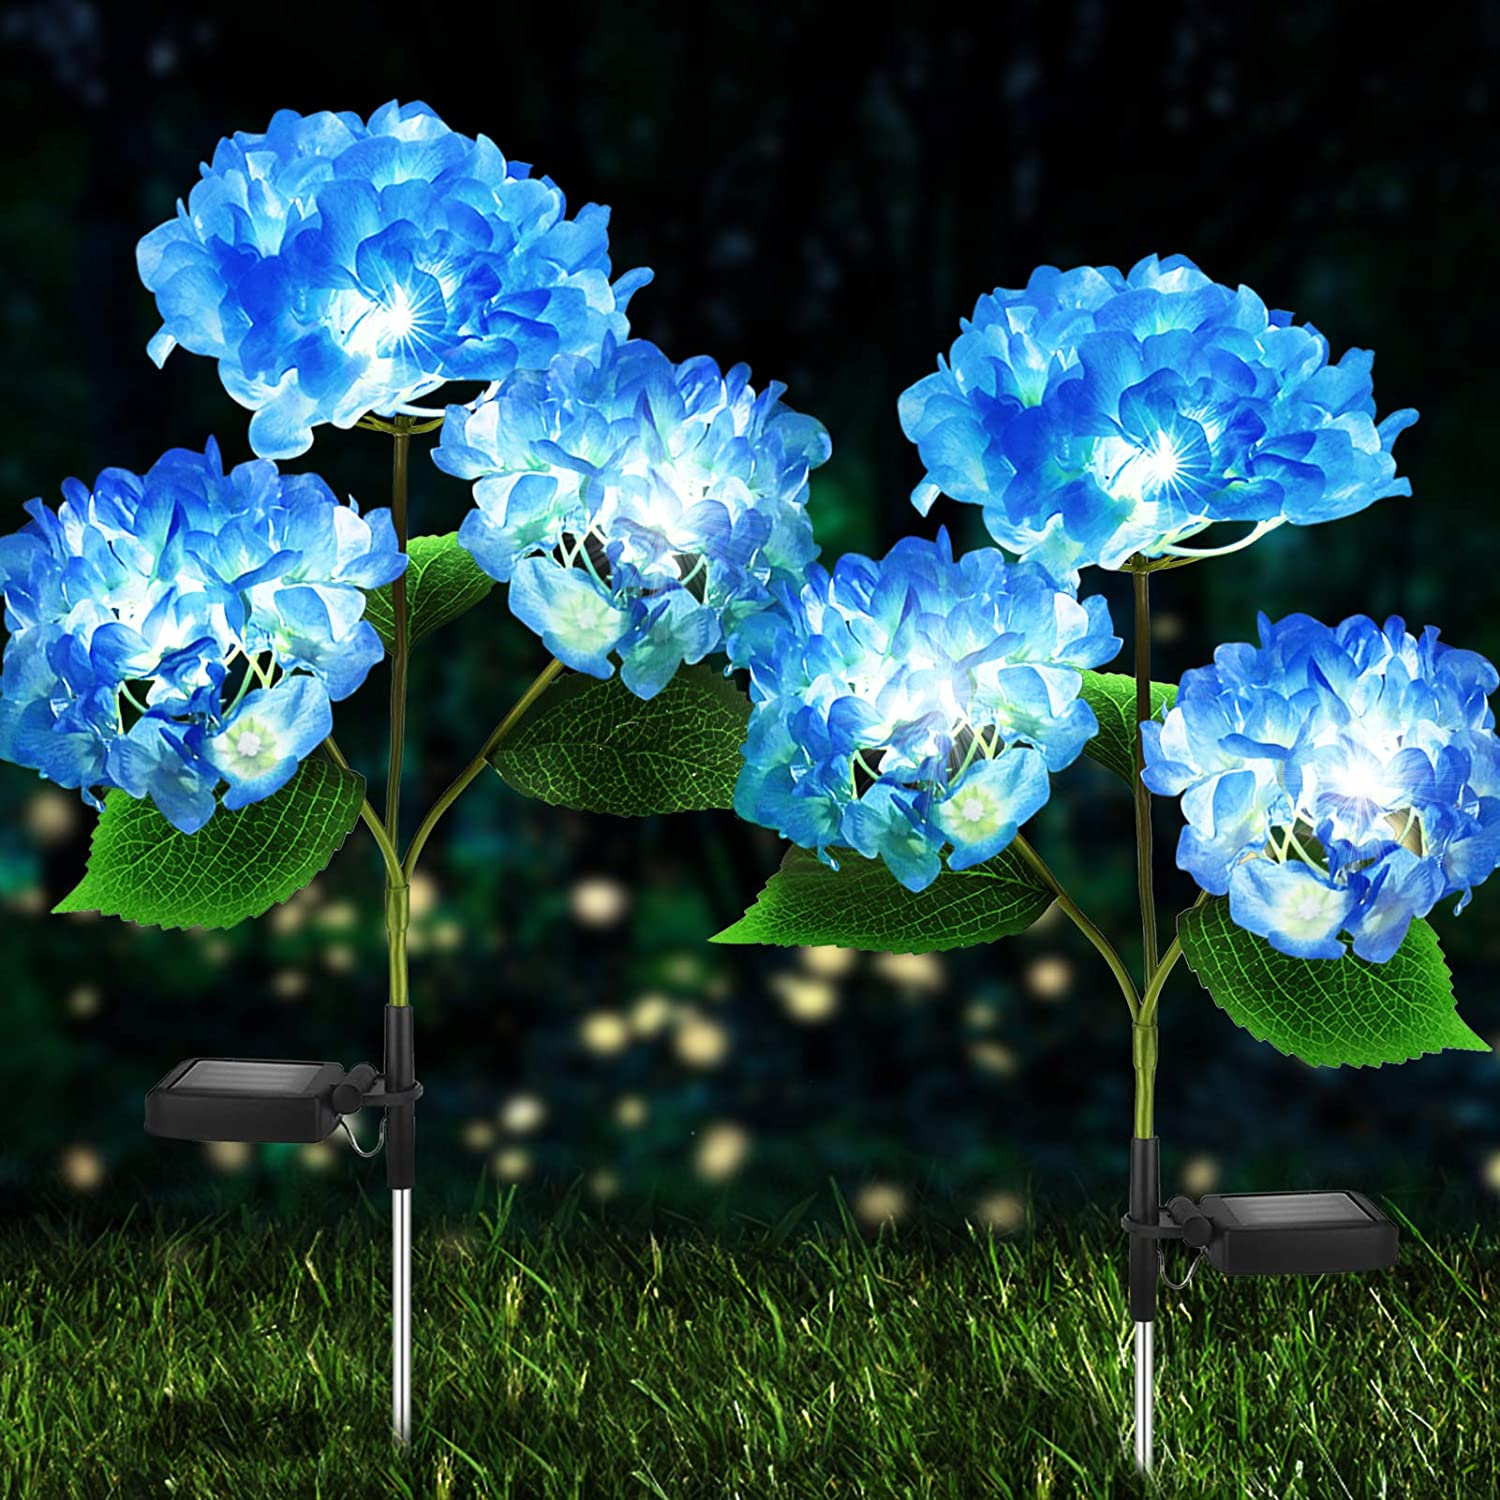 Solar Lights Outdoor Decorative - 2 Pack Hydrangea Solar Garden Stake Lights Waterproof and Realistic LED Flowers Powered Outdoor In-Ground Lights for Garden Lawn Patio Backyard (Blue)